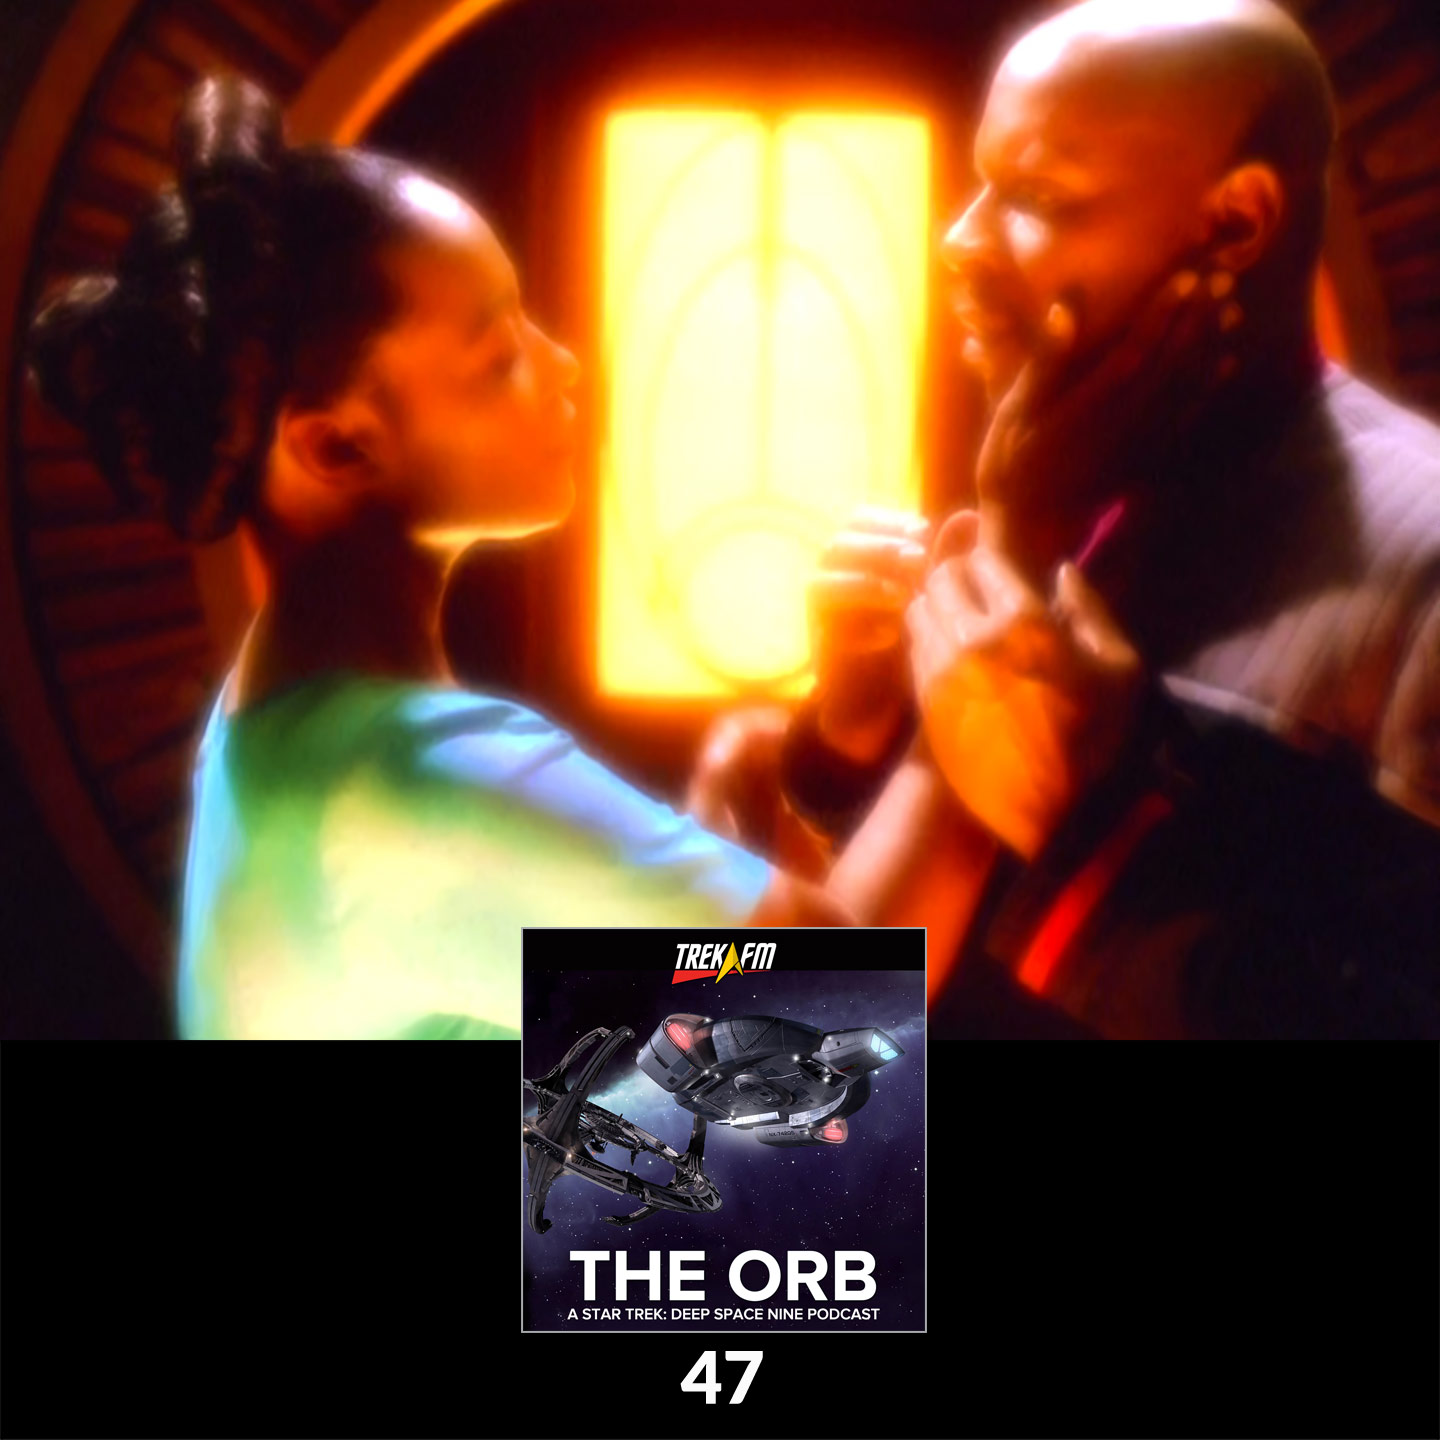 The Orb 47: Your Greatest Trial Is About to Begin